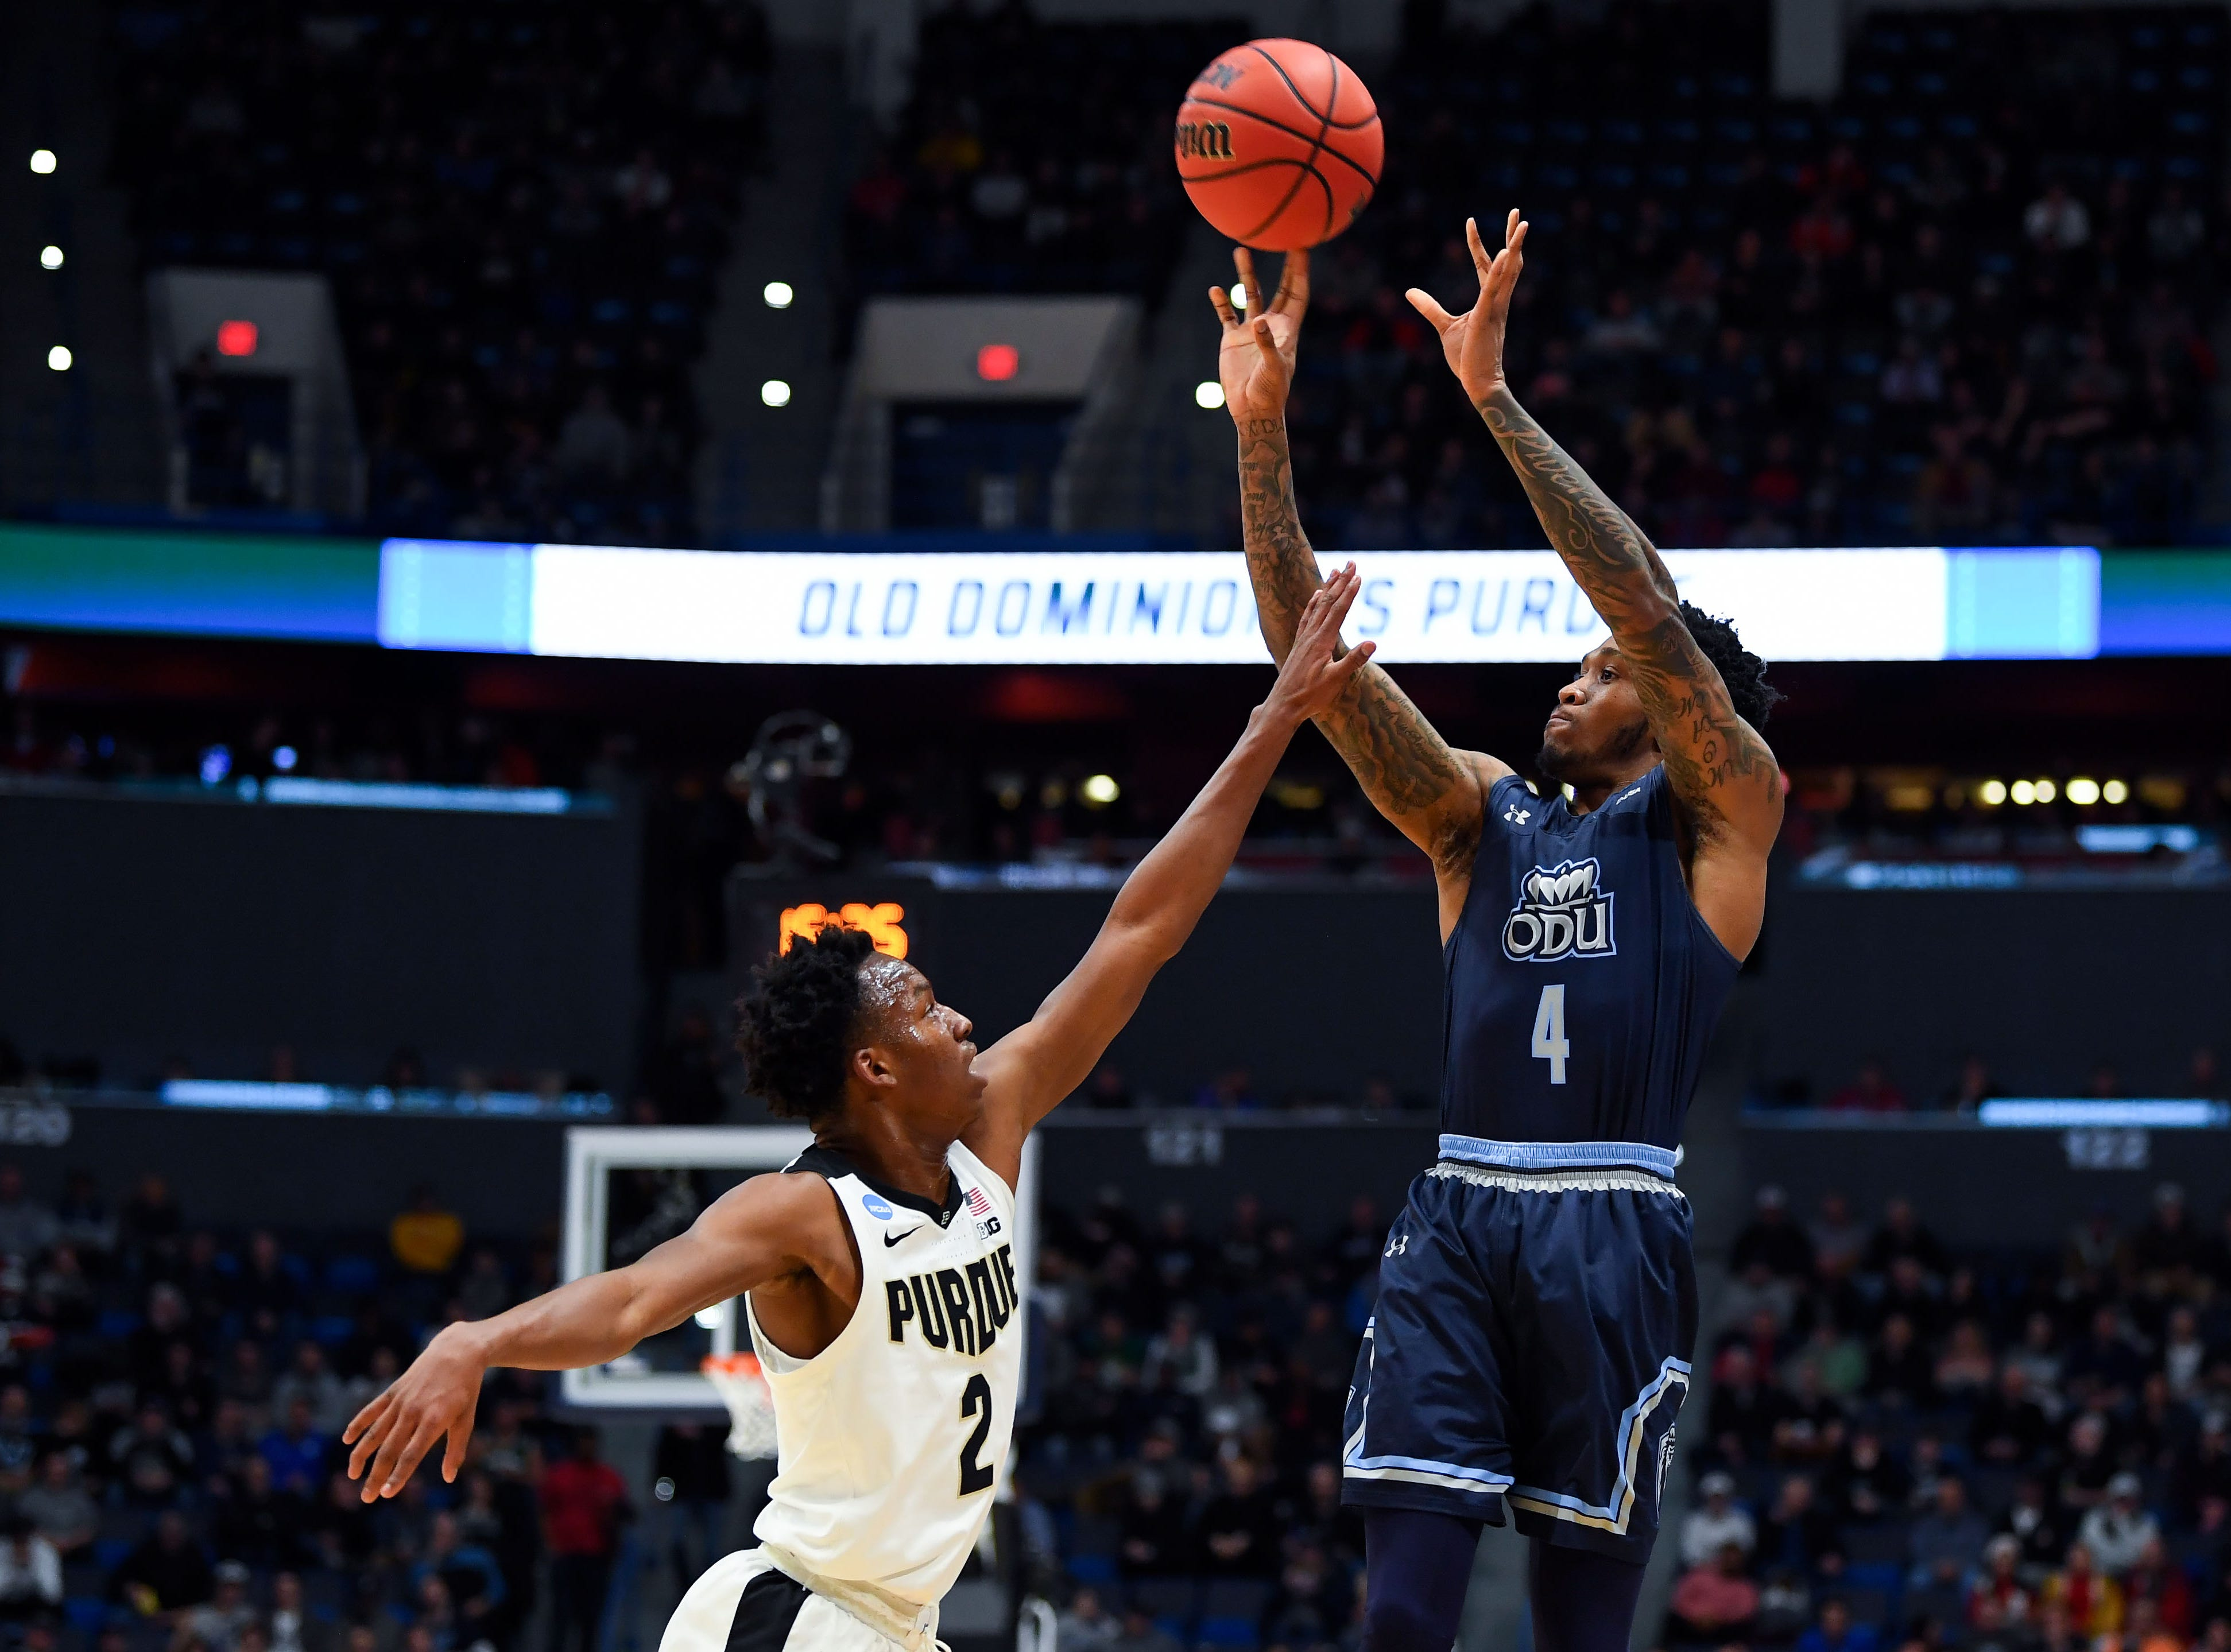 Mar 21, 2019; Hartford, CT, USA; Old Dominion Monarchs guard Ahmad Caver (4) attempts a shot over Purdue Boilermakers guard Eric Hunter Jr. (2) during the first half of a game in the first round of the 2019 NCAA Tournament at XL Center. Mandatory Credit: Robert Deutsch-USA TODAY Sports